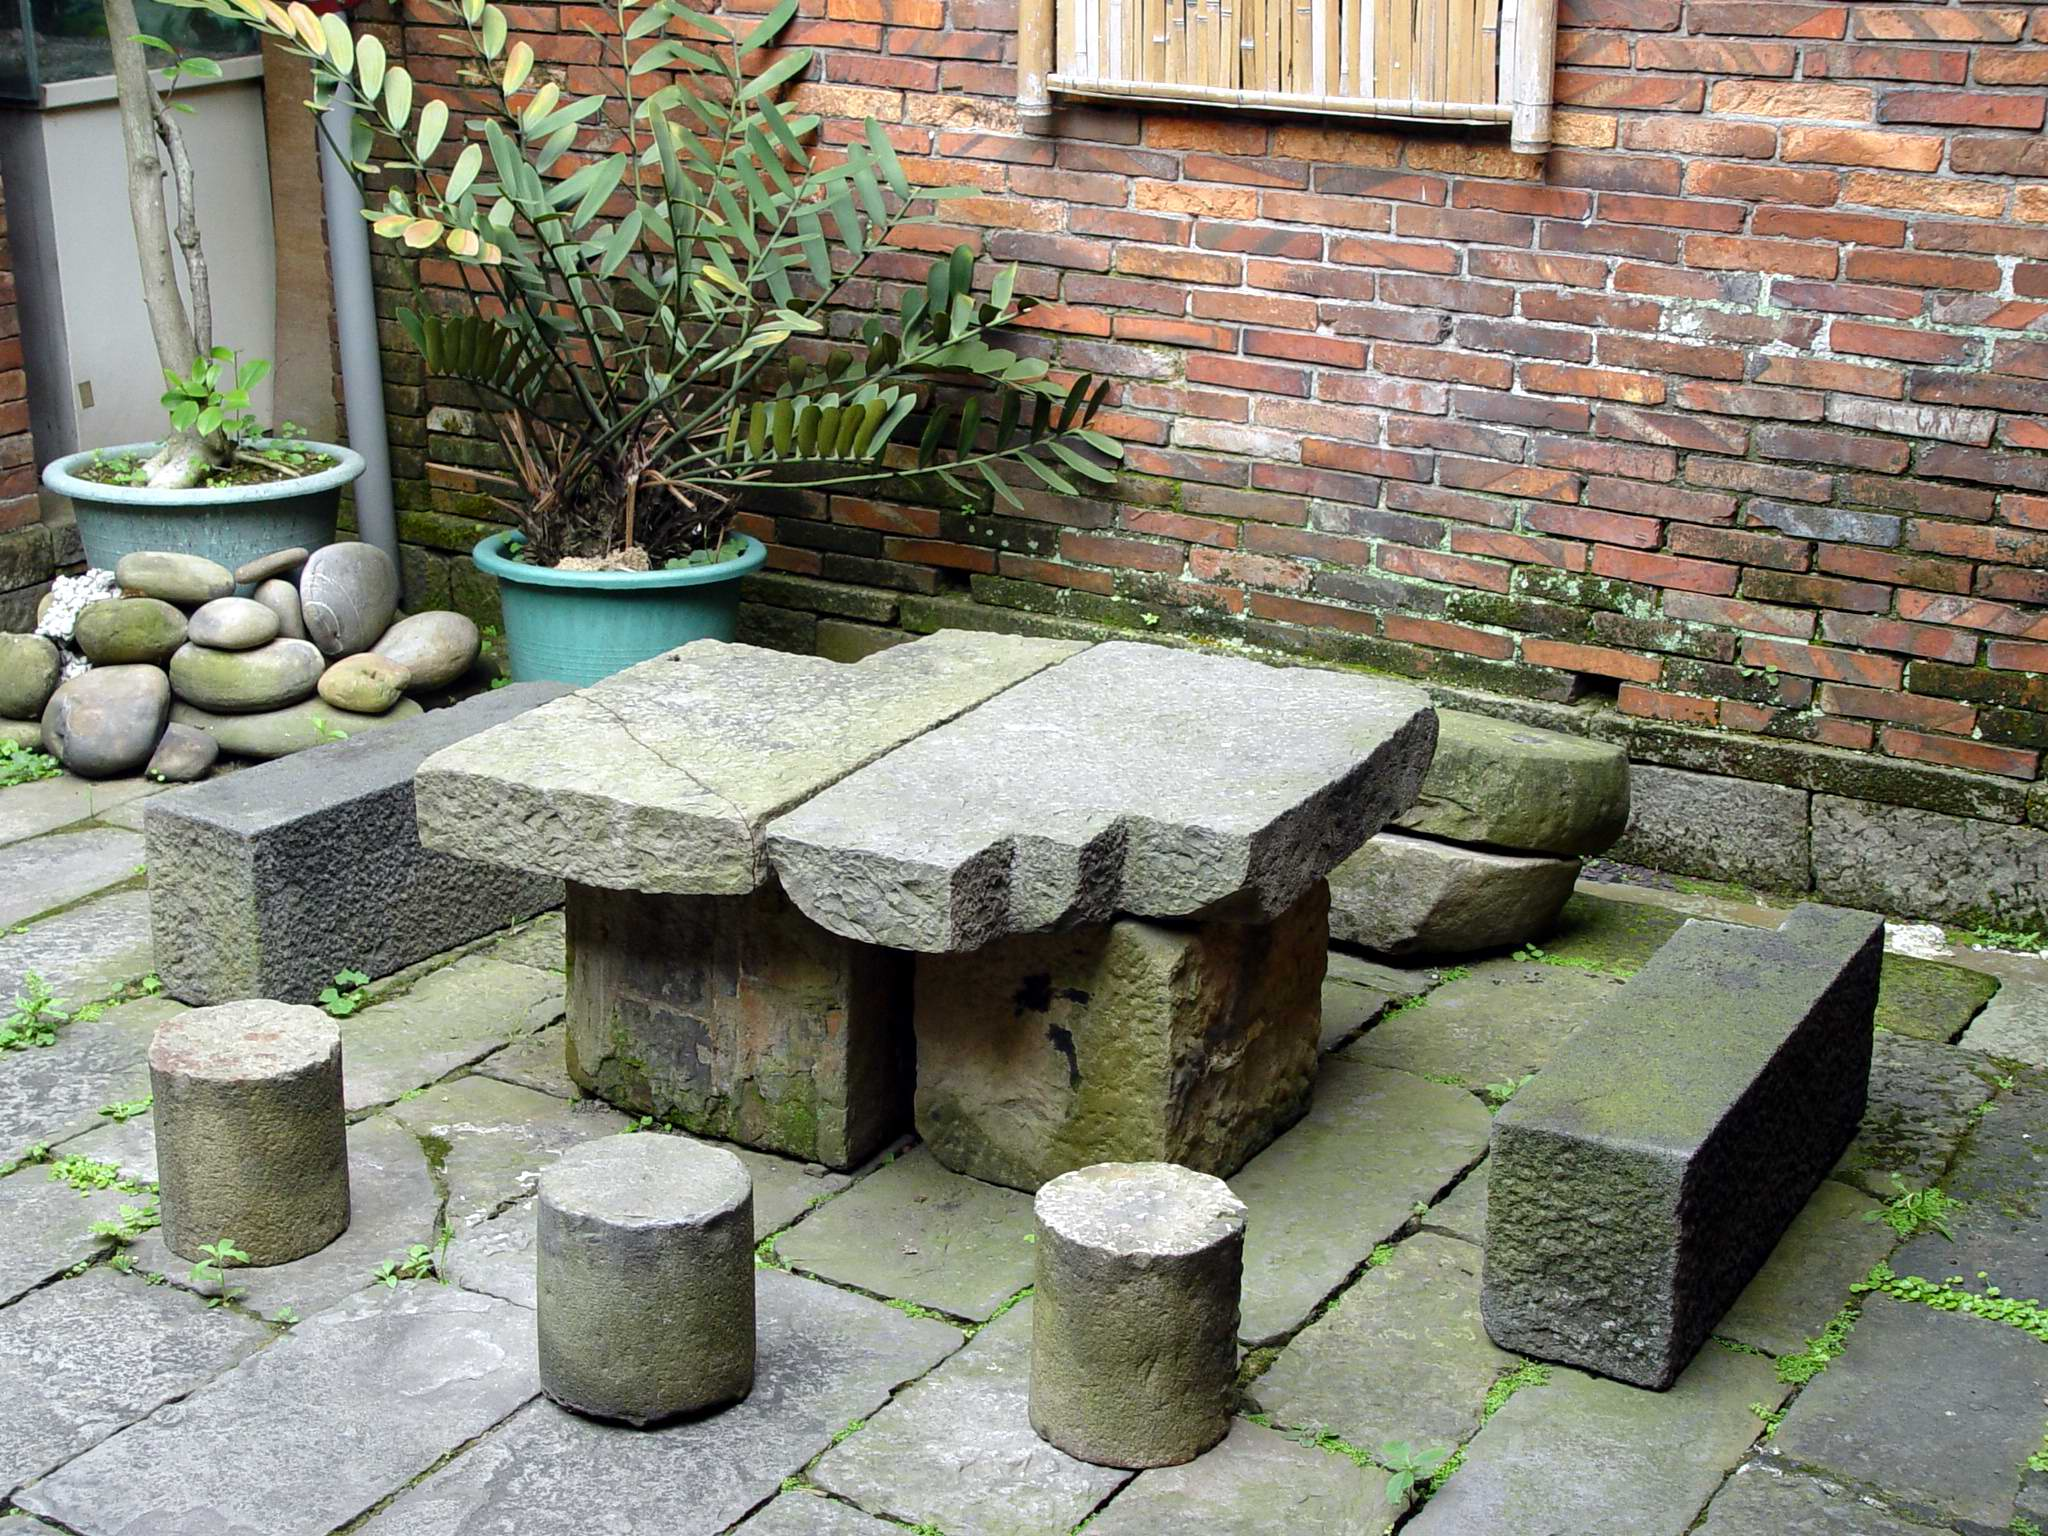 06 Stone Table And Chairs Jpg